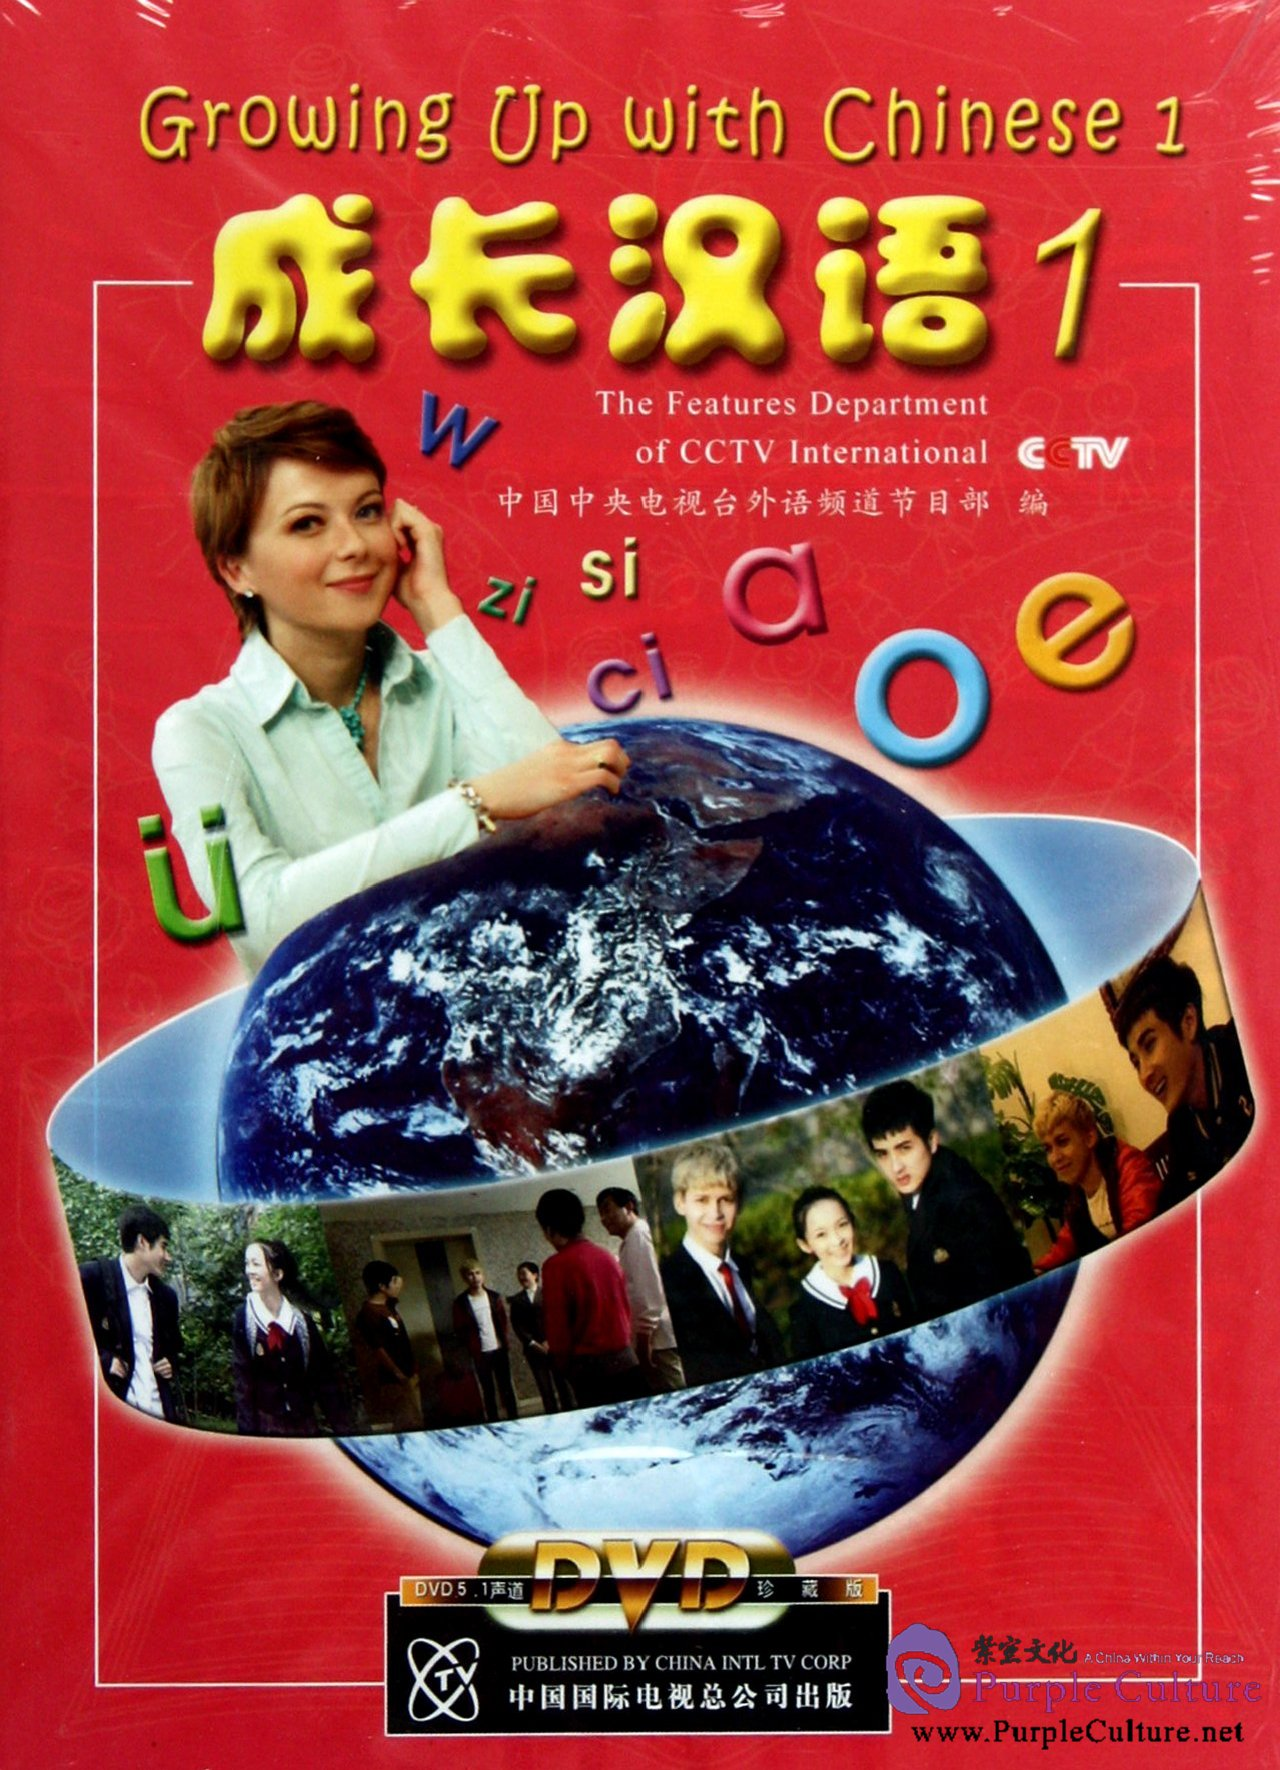 Growing Up With Chinese 3 Dvds Vol 1 By The Features